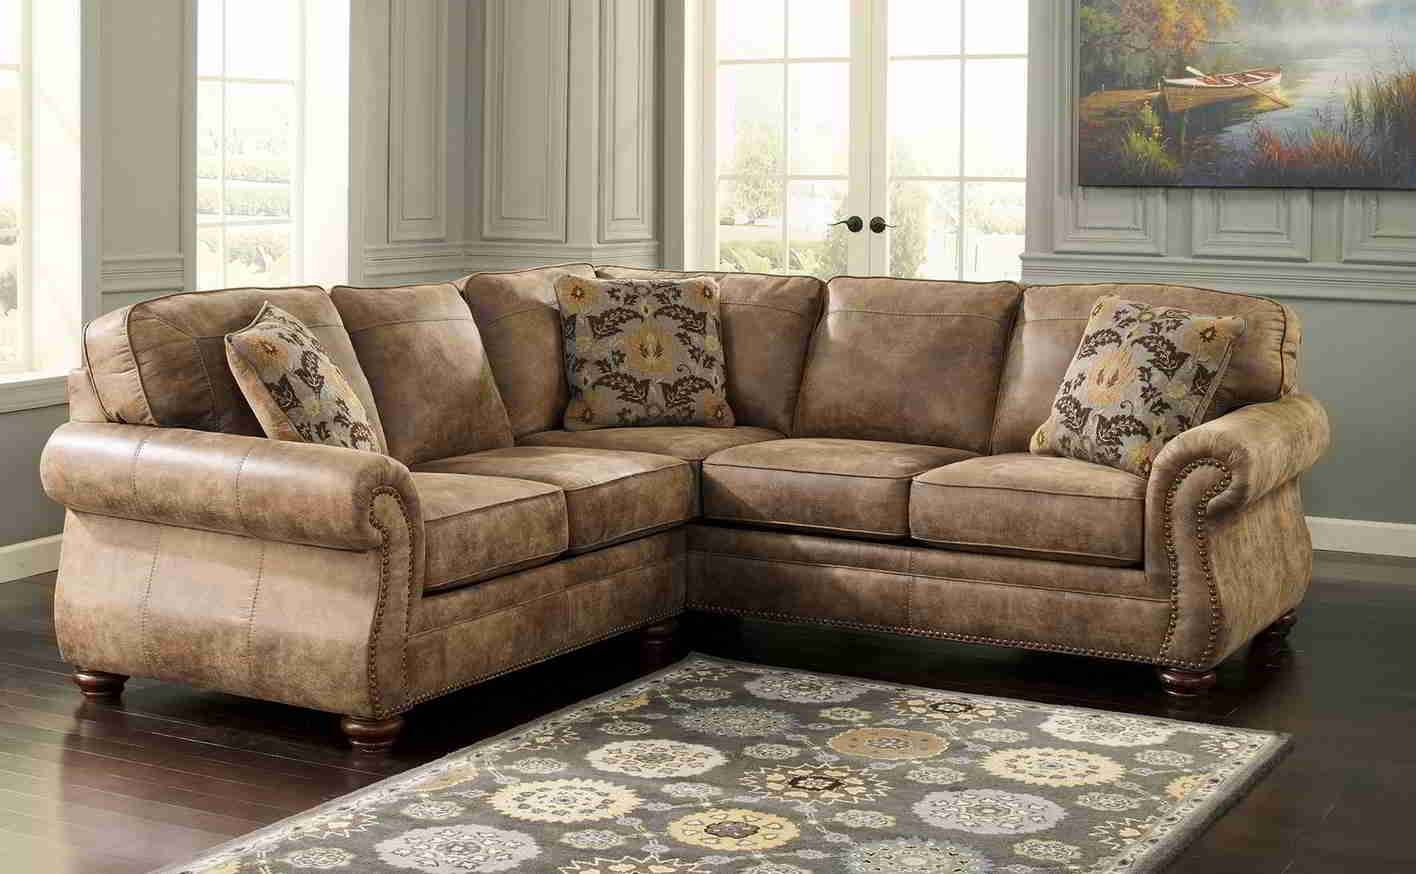 Glamorous Wide Seat Sectional Sofas 35 About Remodel Mitchell Gold throughout Gold Sectional Sofa (Image 12 of 25)